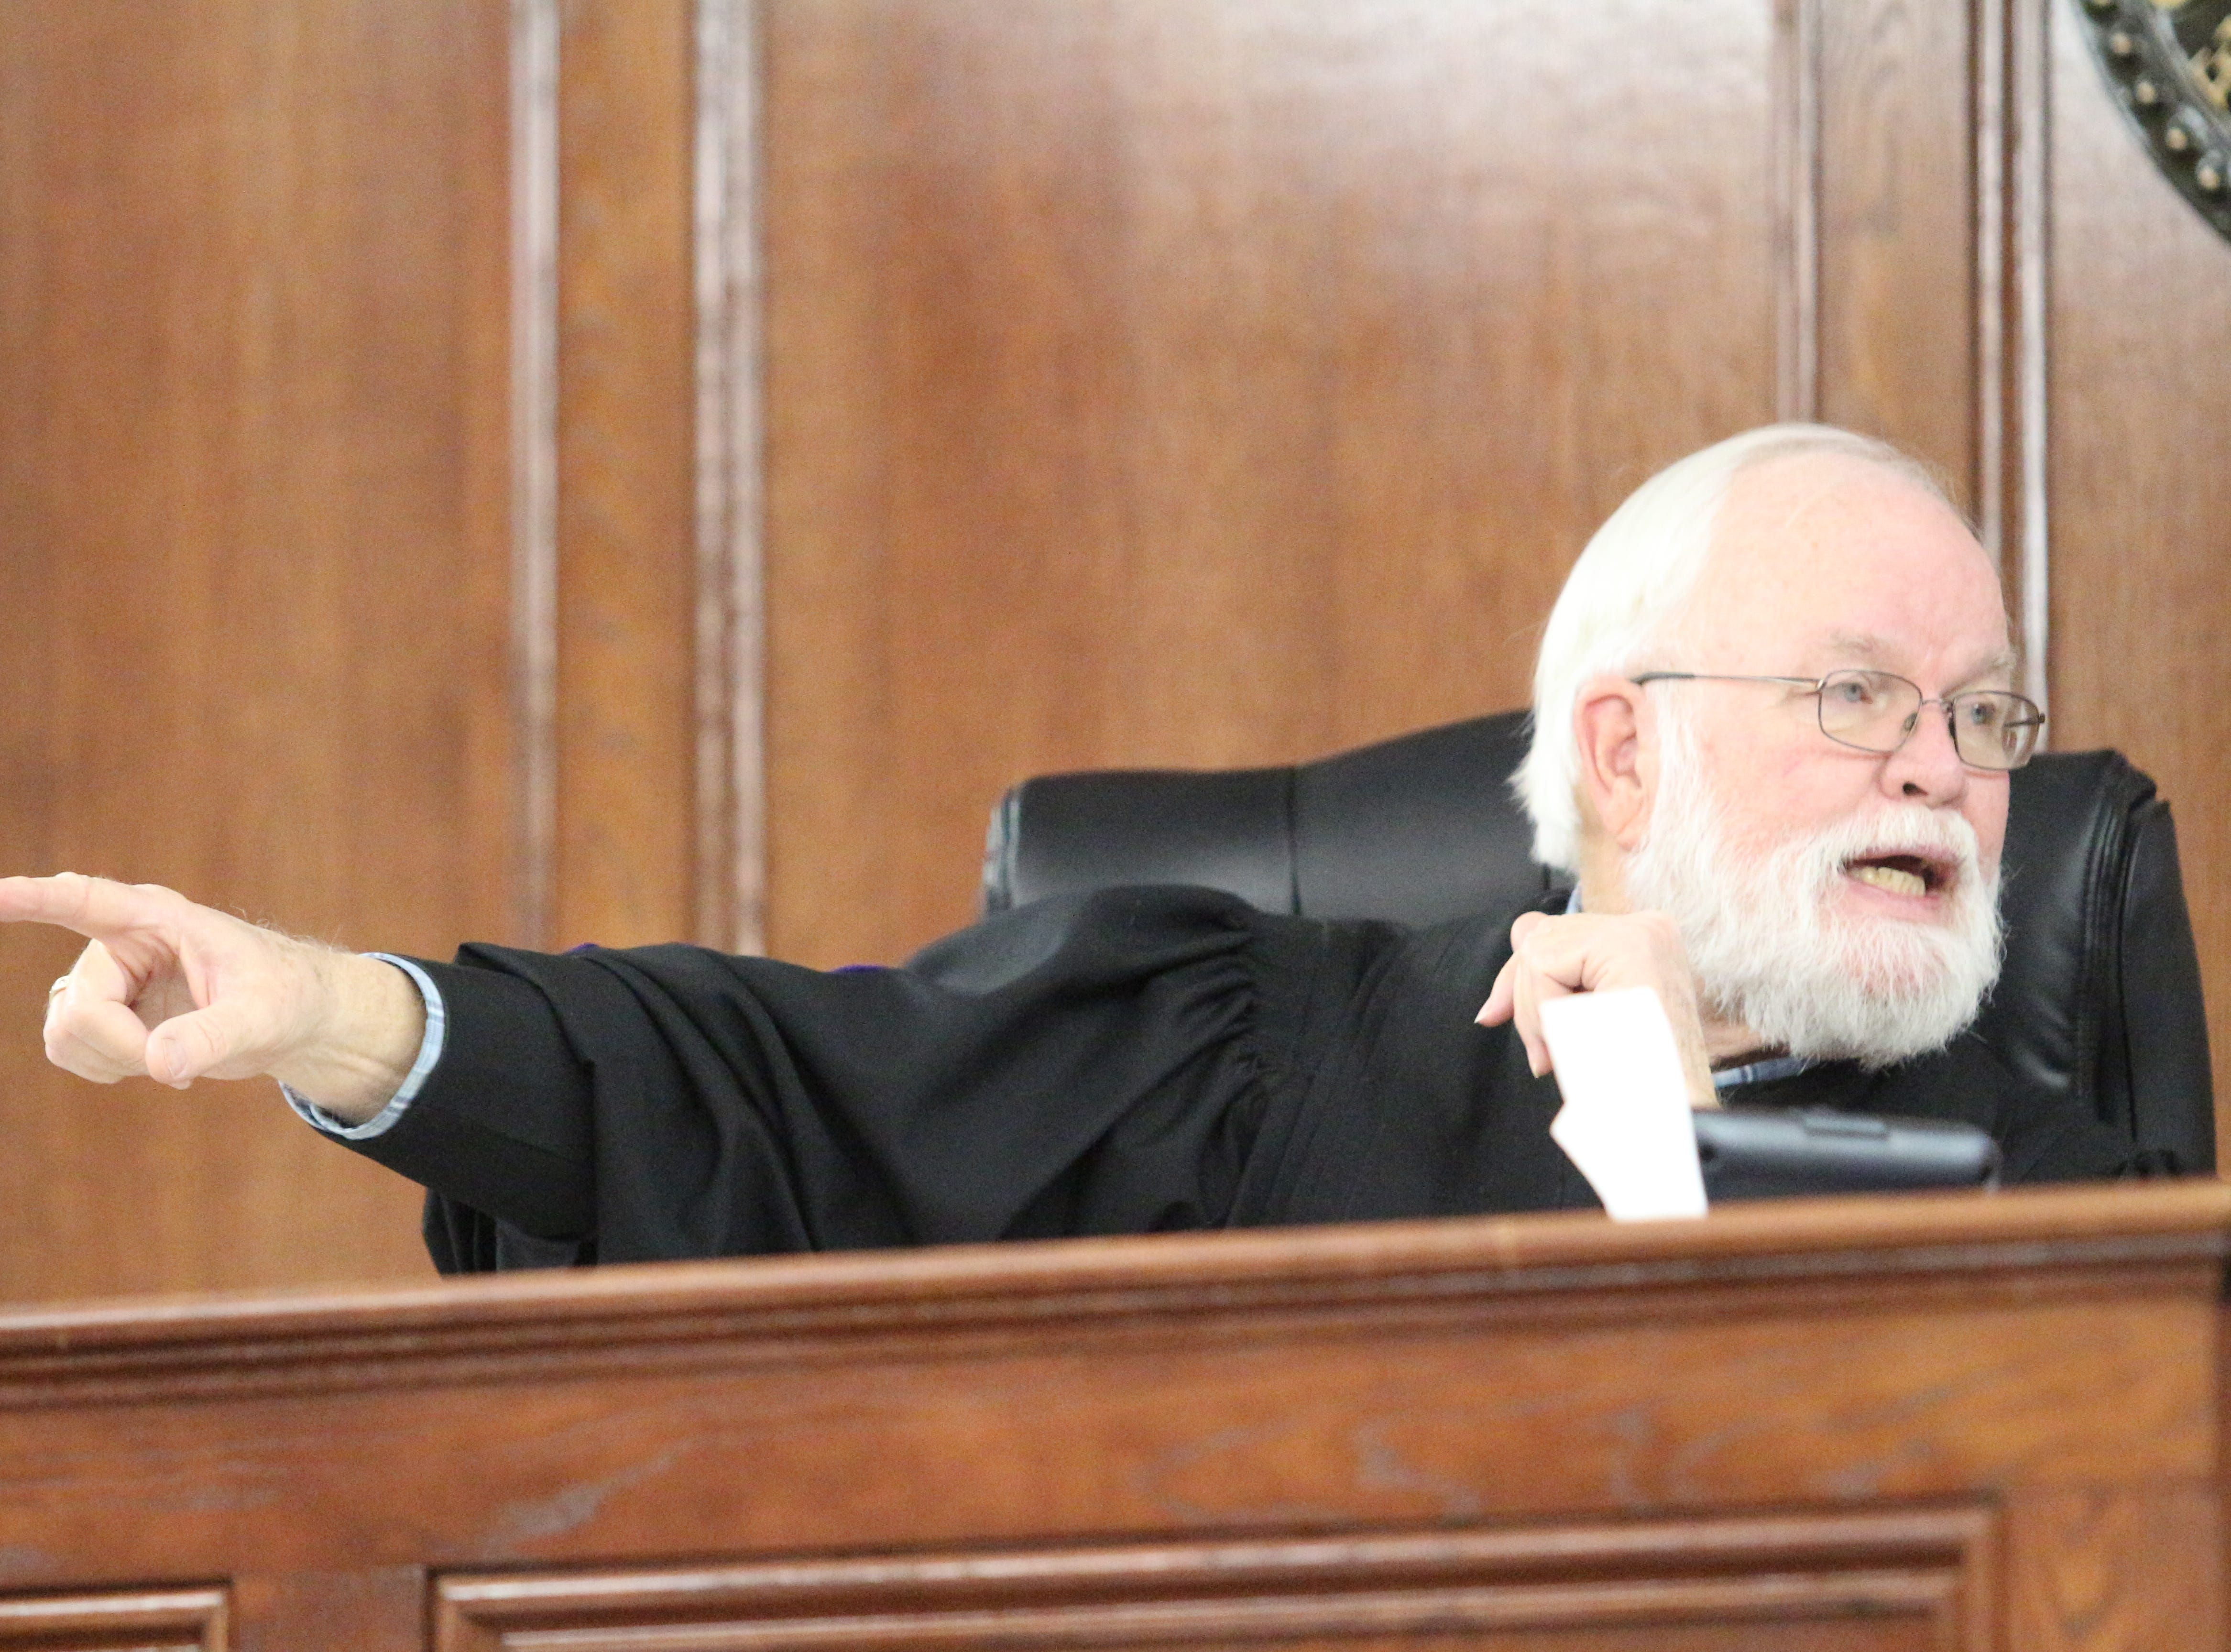 General Sessions Judge Wayne Shelton getting upset over the disregard of life as he listens to details of two groups of men who may have been shooting at one another from cars before fatal shooting and wreck. He asks the detective if the other driver had been shot if he would be sitting where Vincent Merriweather was, in the defendant's chair.